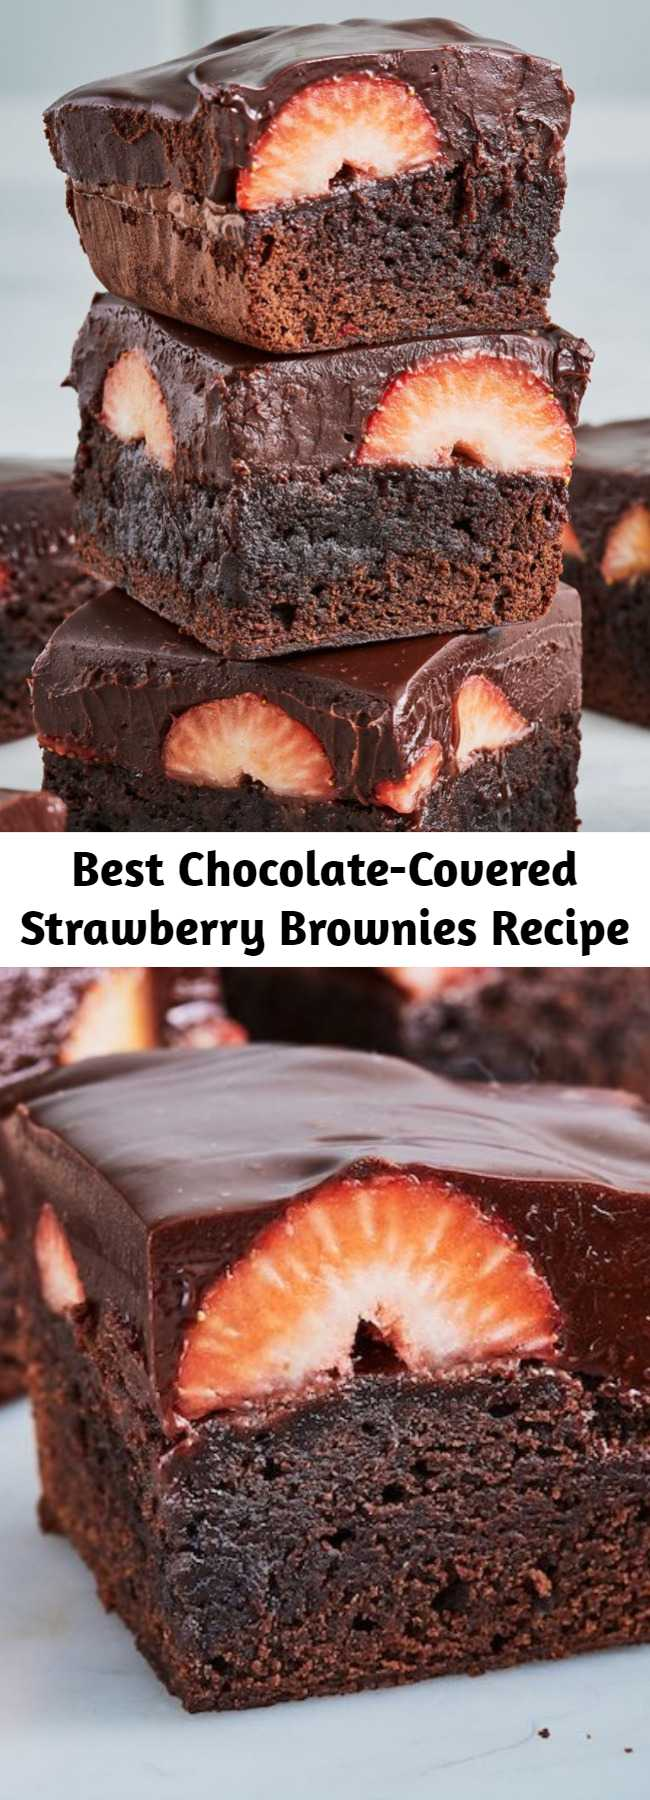 Best Chocolate-Covered Strawberry Brownies Recipe - Love at first bite. #food #easyrecipe #baking #brownies #dessert